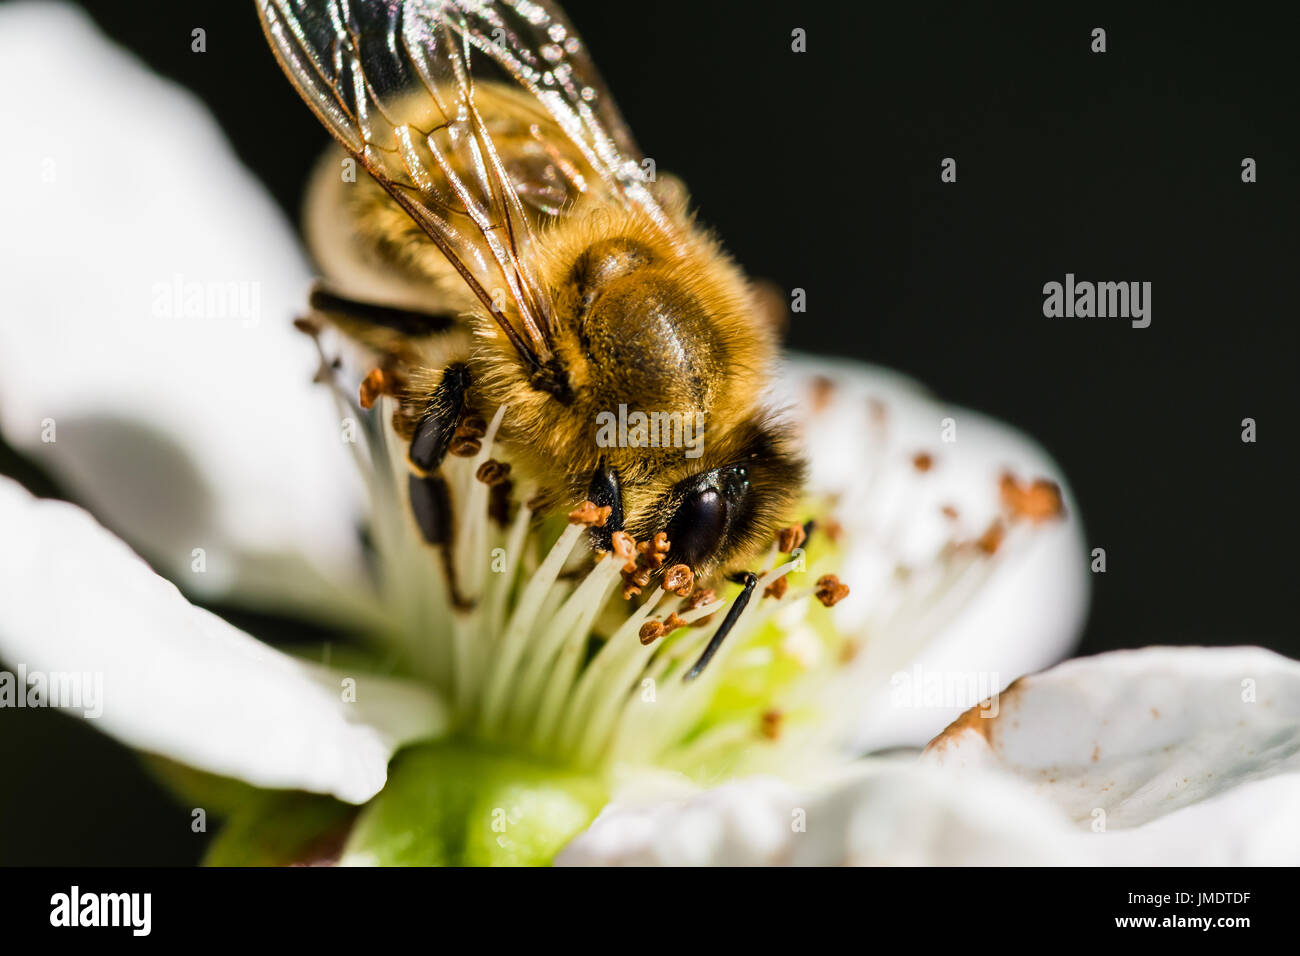 The European bee pollinating a white small flower in the spring meadow. Macro shot with dark blurry background. - Stock Image